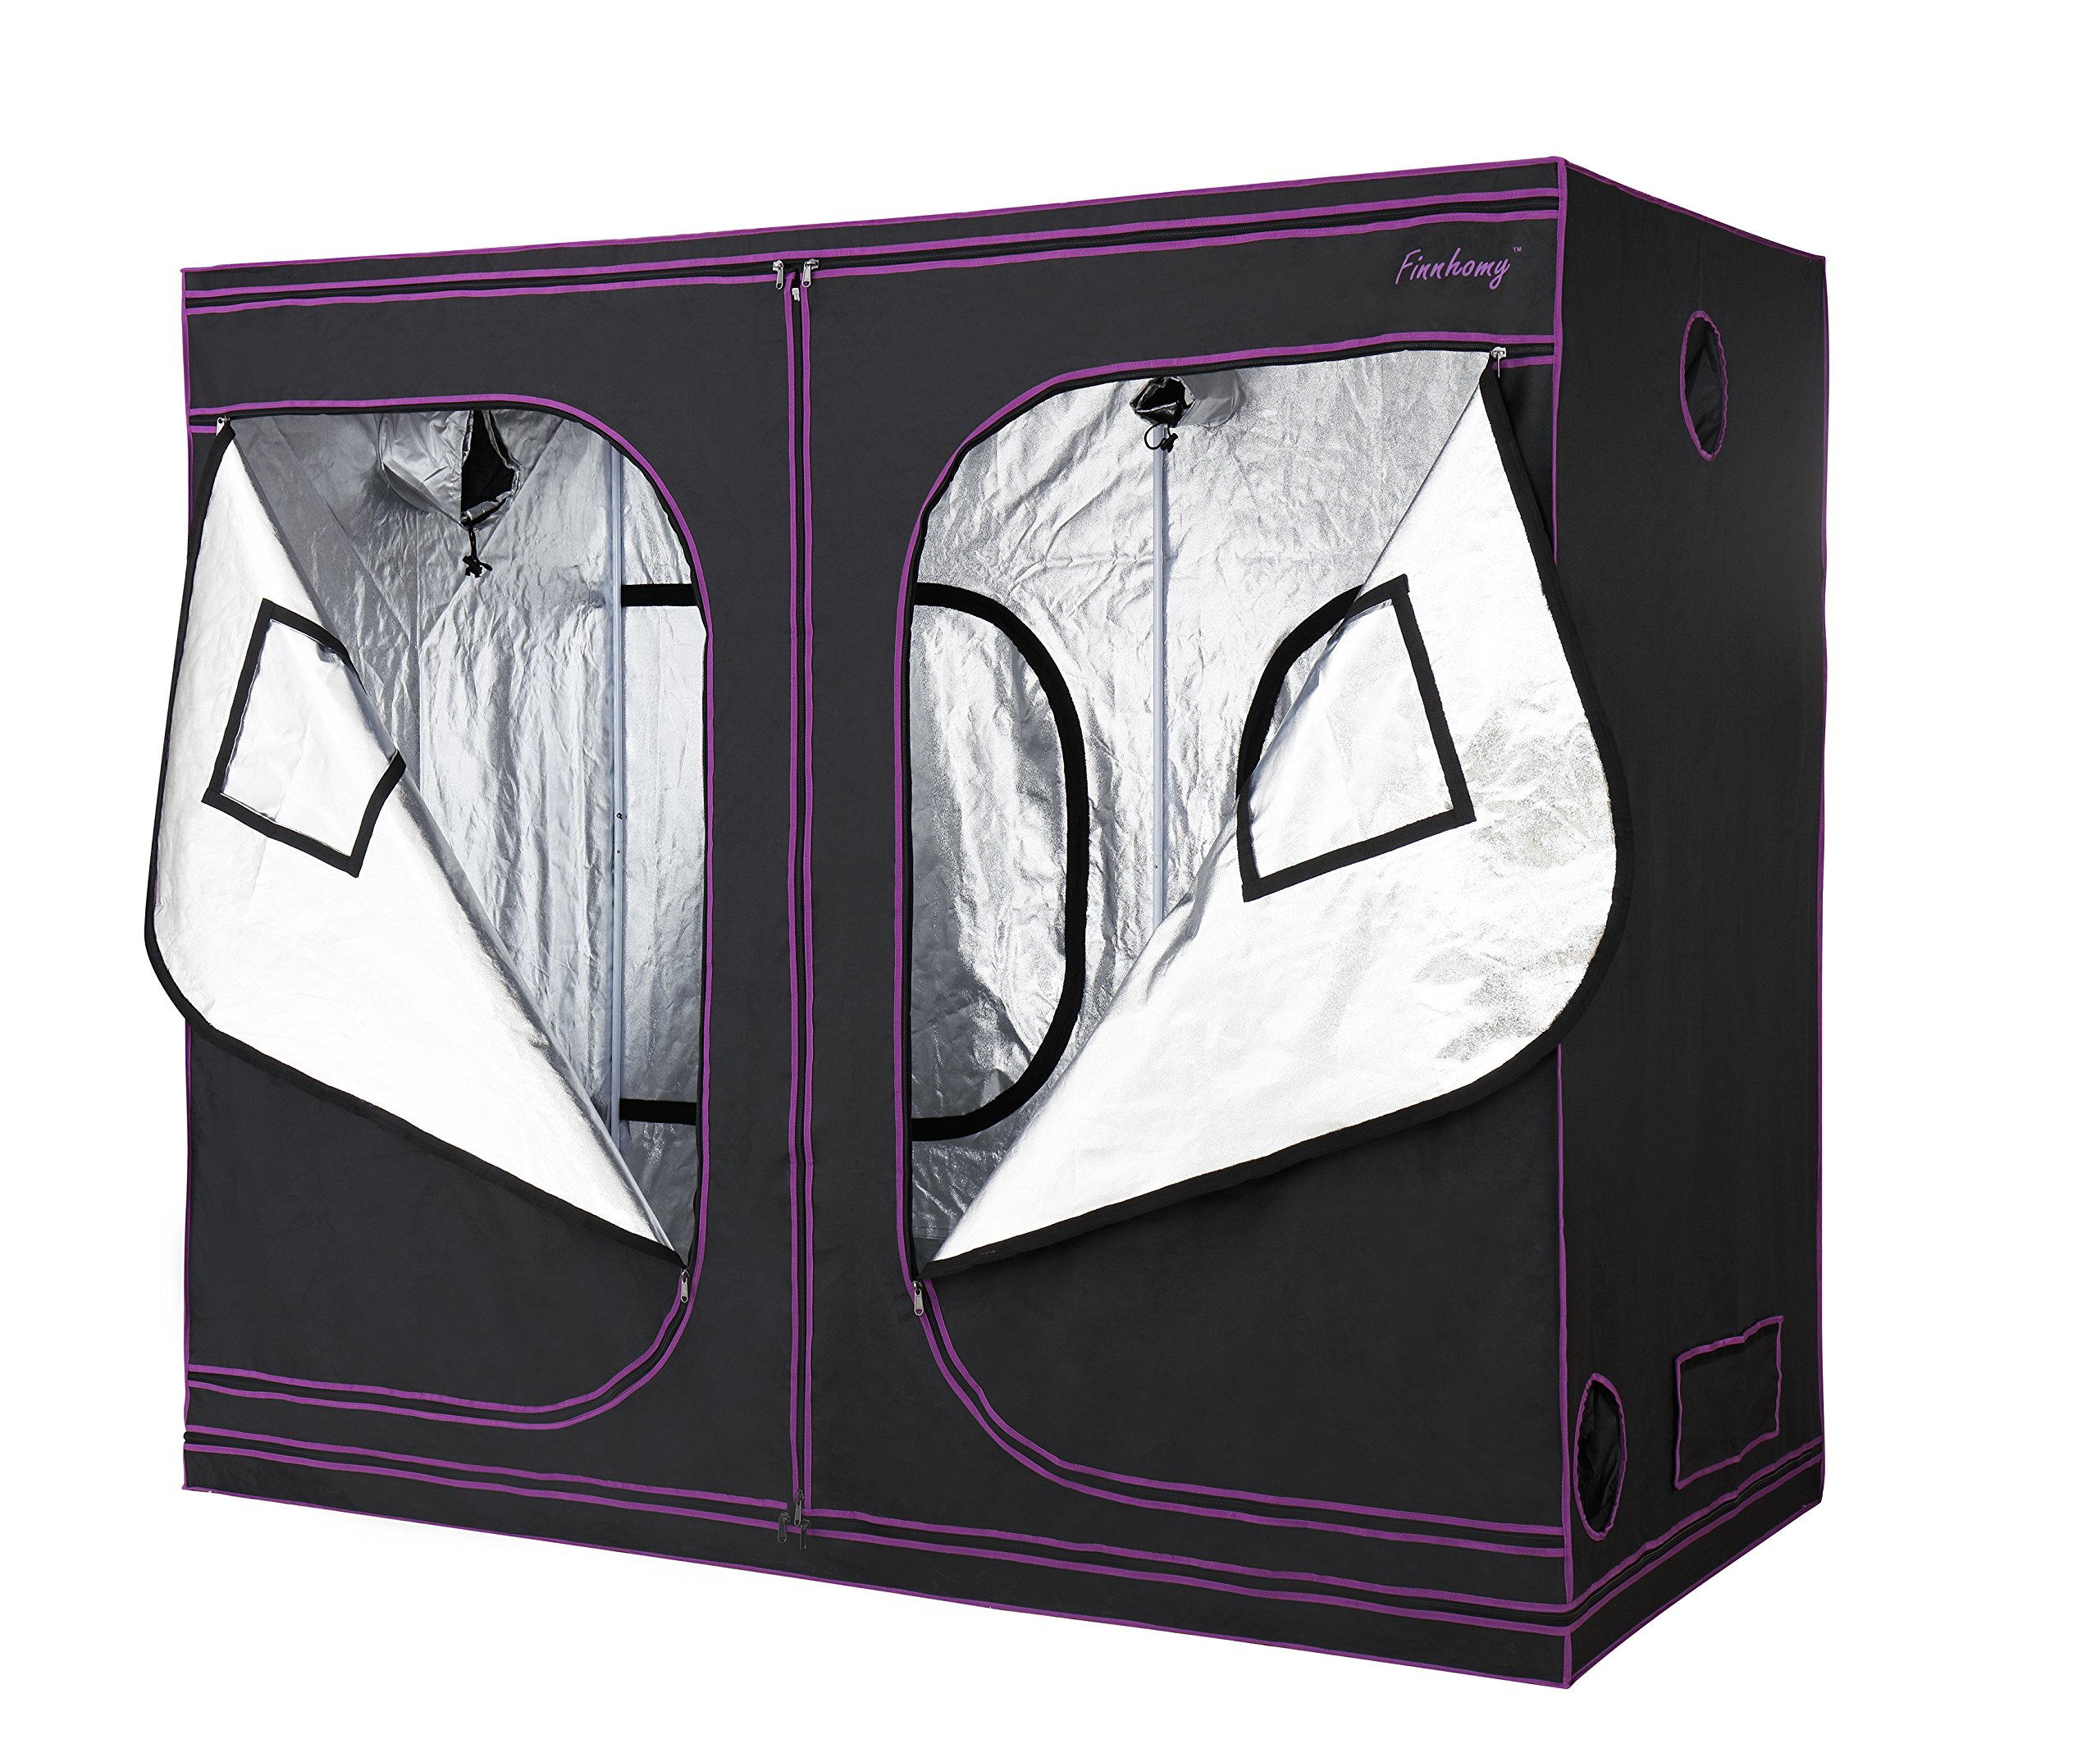 Finnhomy Mylar Hydroponic Grow Tent Multiple Sized 48''x24''x60'' 48''x48''x80'' 36''x36''x72'' 96''x48''x80'' 60''x60''x80'' 600D Grow Room Grow Box Greenhouse Reflective for Indoor Plants Growing Tent(96''x48''x80'')